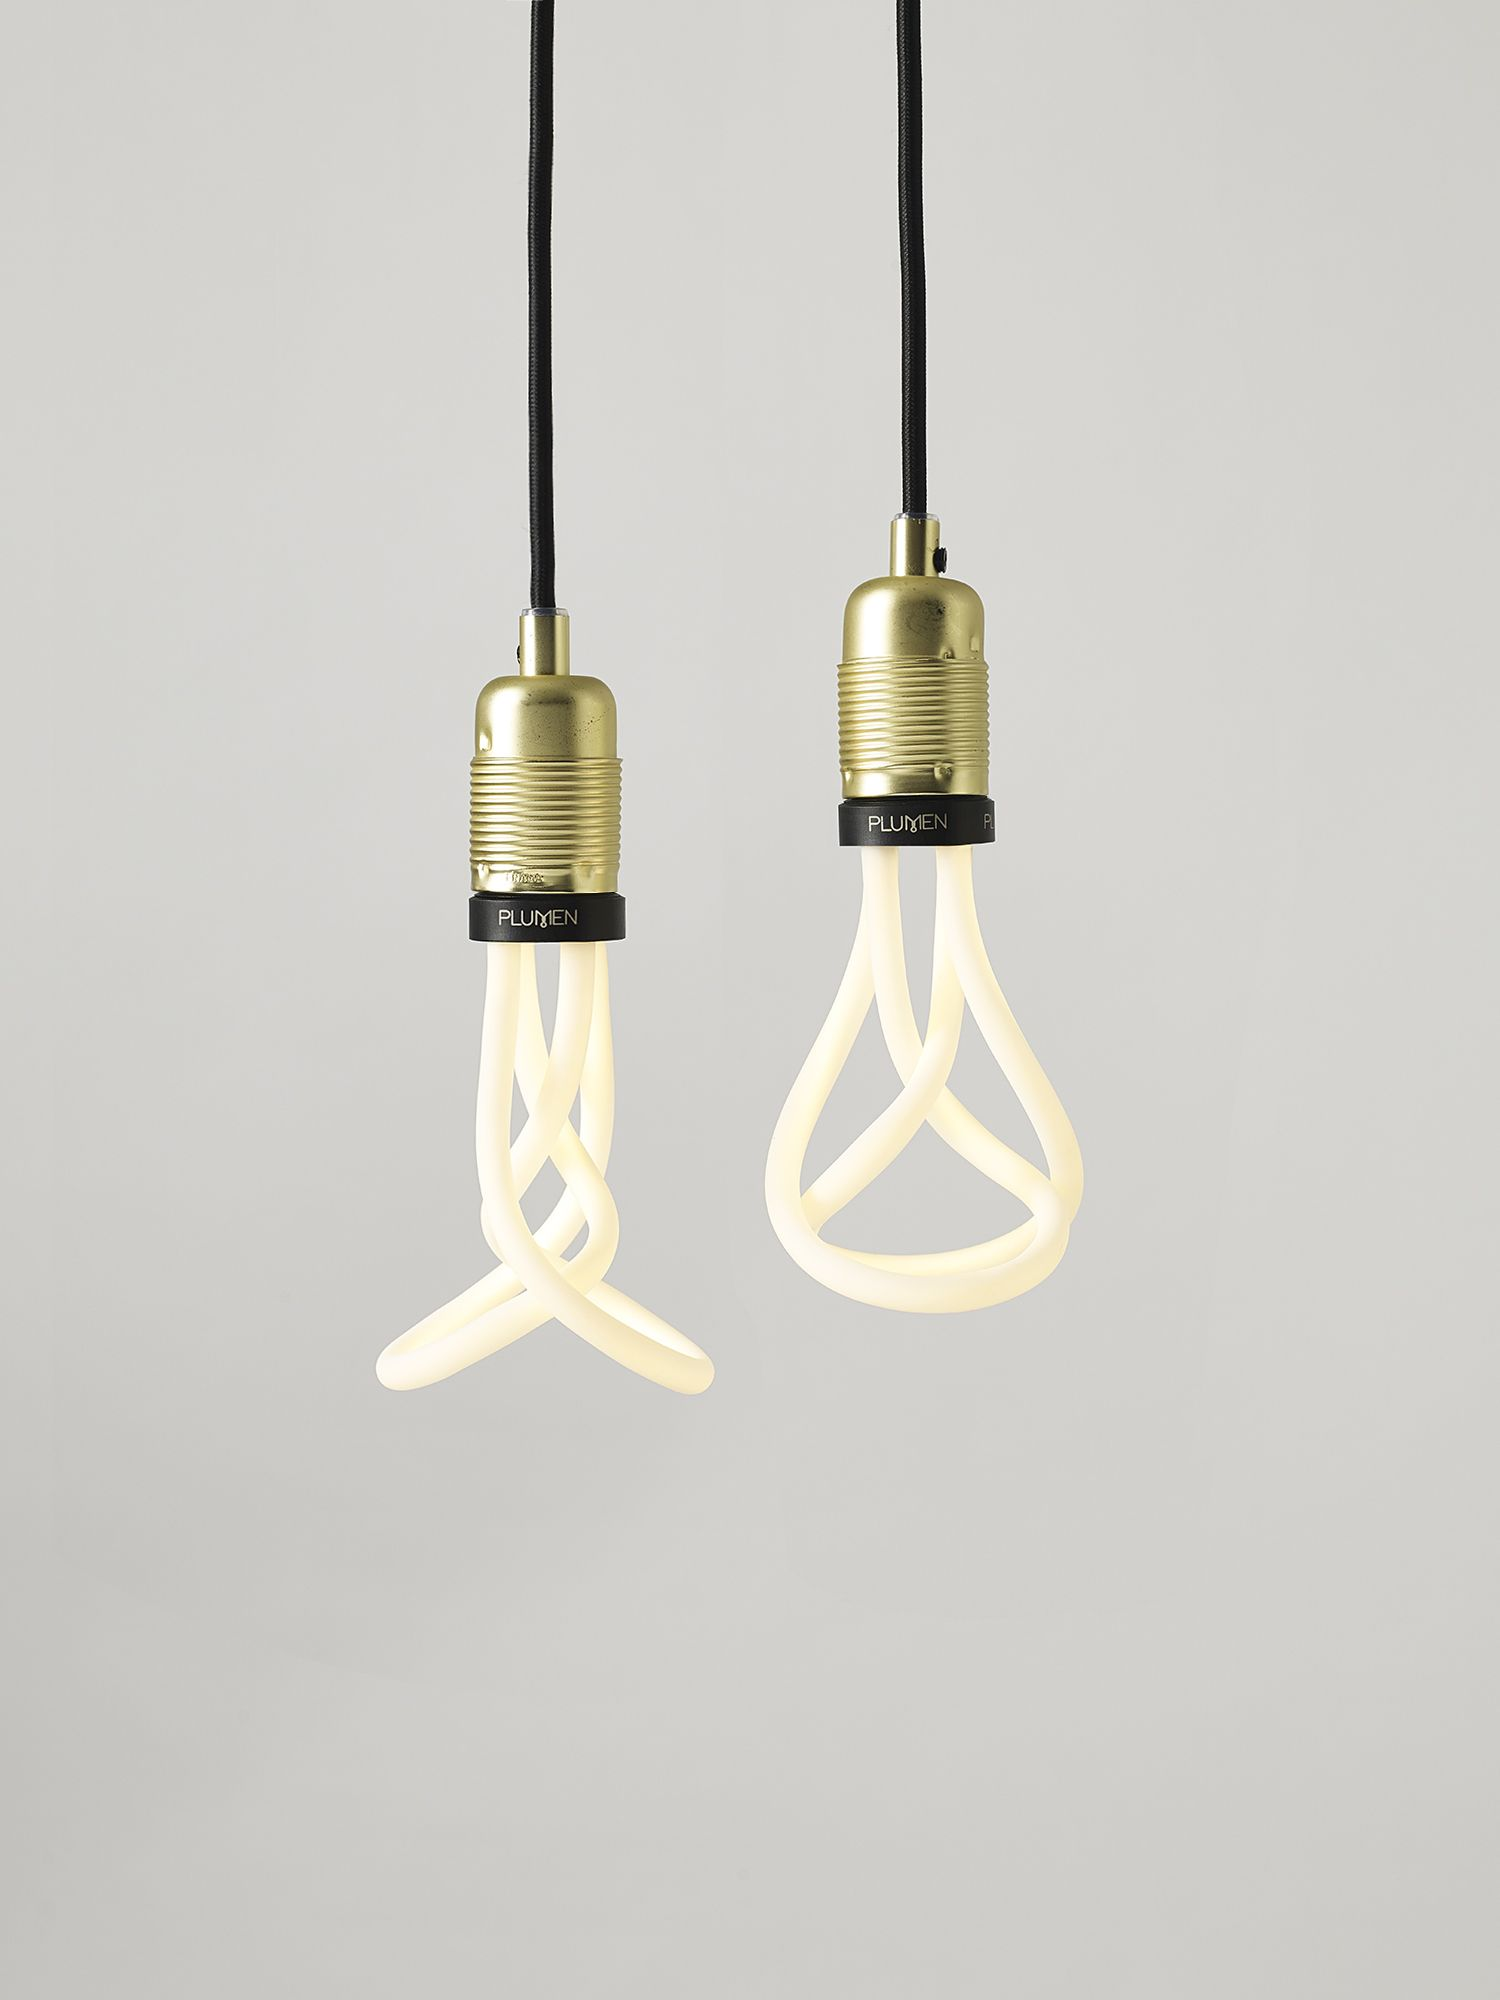 The New More Compact And Sleeker Proportions Of The Plumen 001 Led Means The Bulb Now Goes Brilliantly With A Much Grea With Images Light Bulb Design Creative Lamps Light